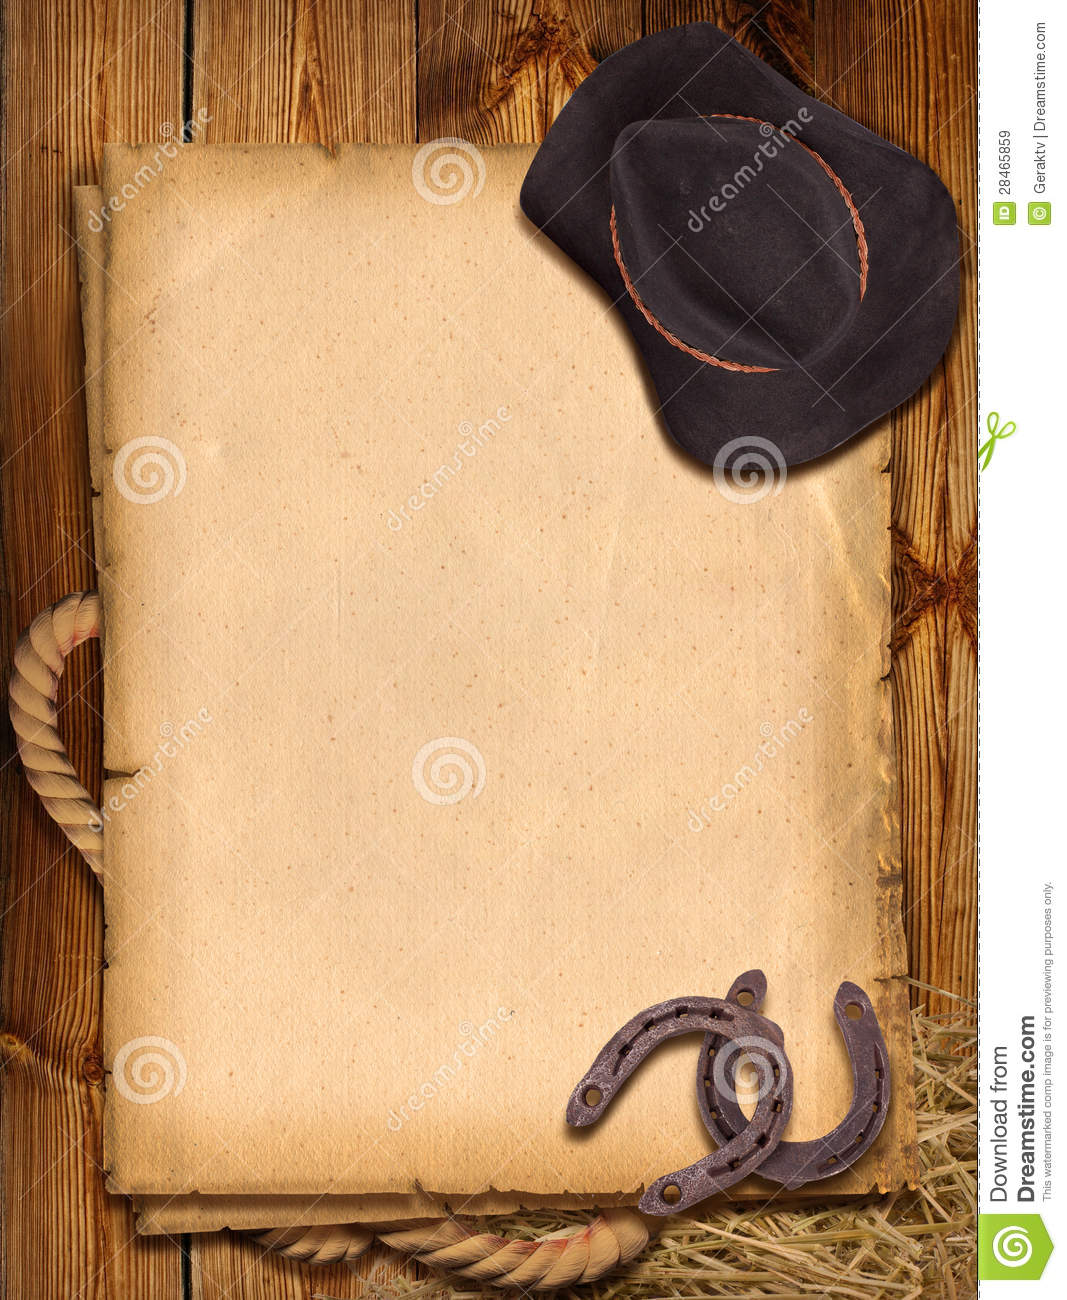 Western background with cowboy hat and horseshoes for design.